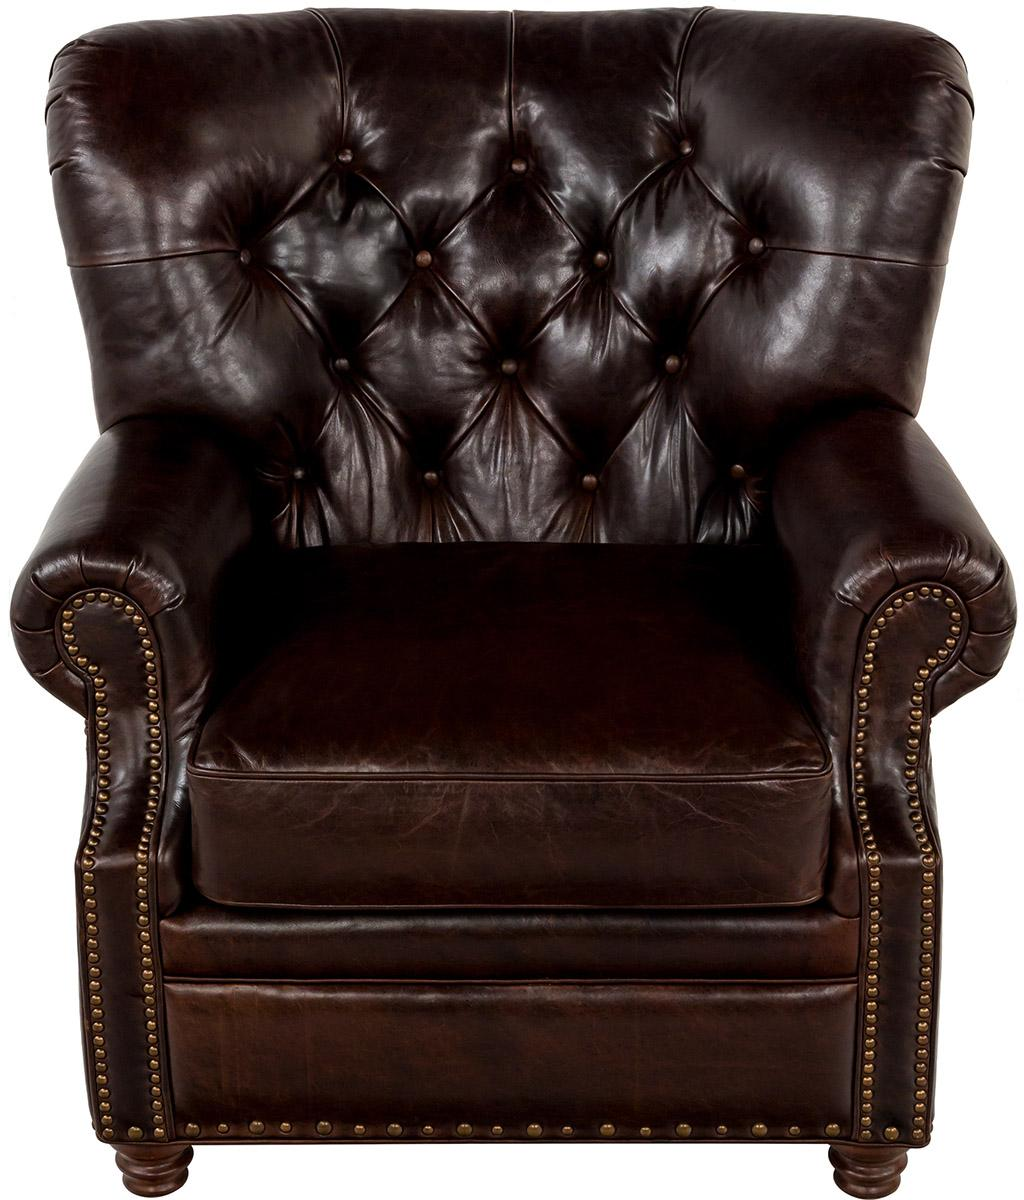 Traditional Leather Tufted Nailhead Armchair- Safavieh.com